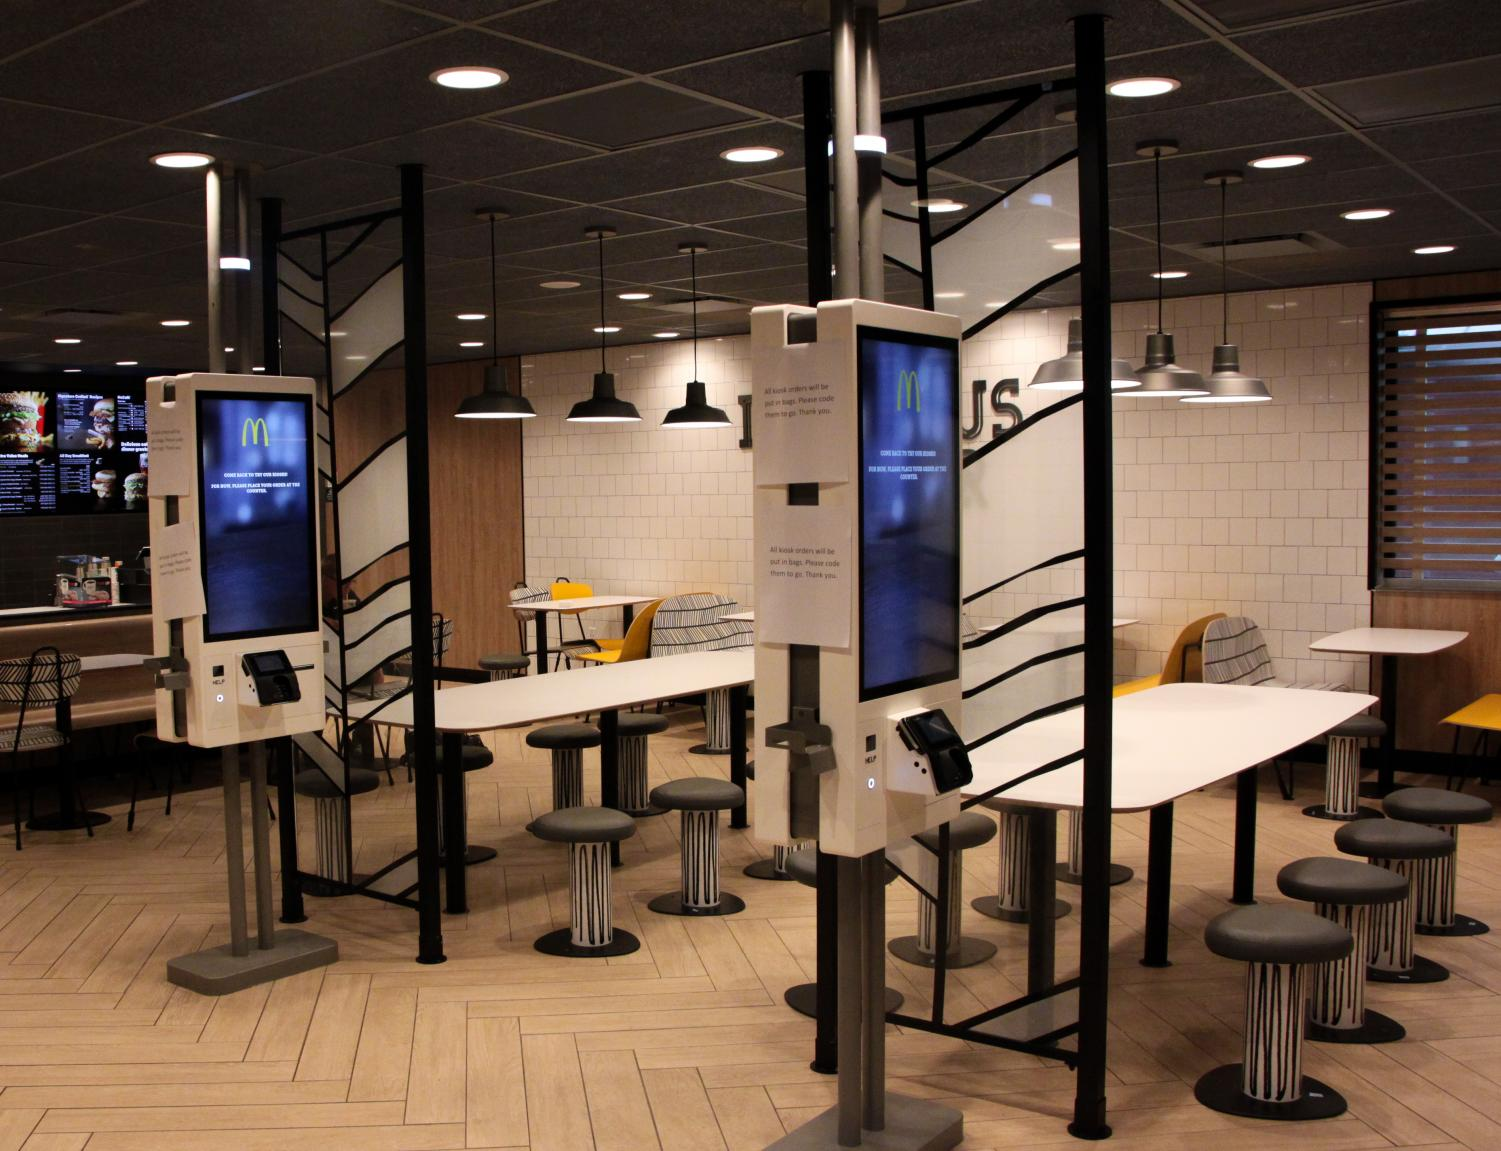 The renovation of the Whitewater McDonald's has added plenty of new seating and kiosks for customers to order food.